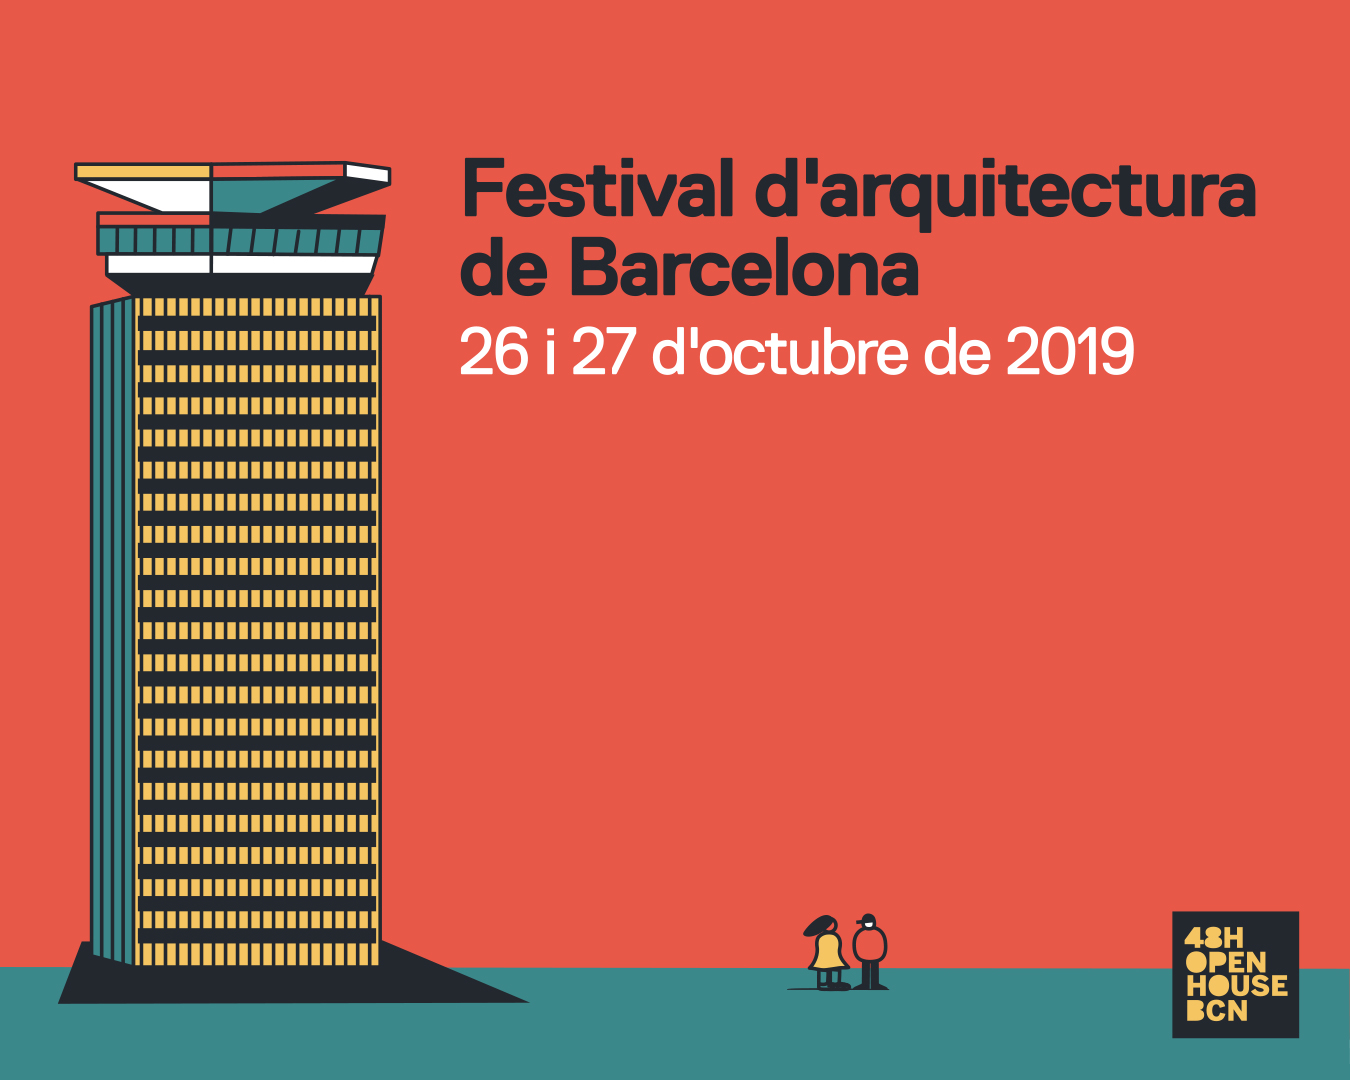 48H Open House BCN'19